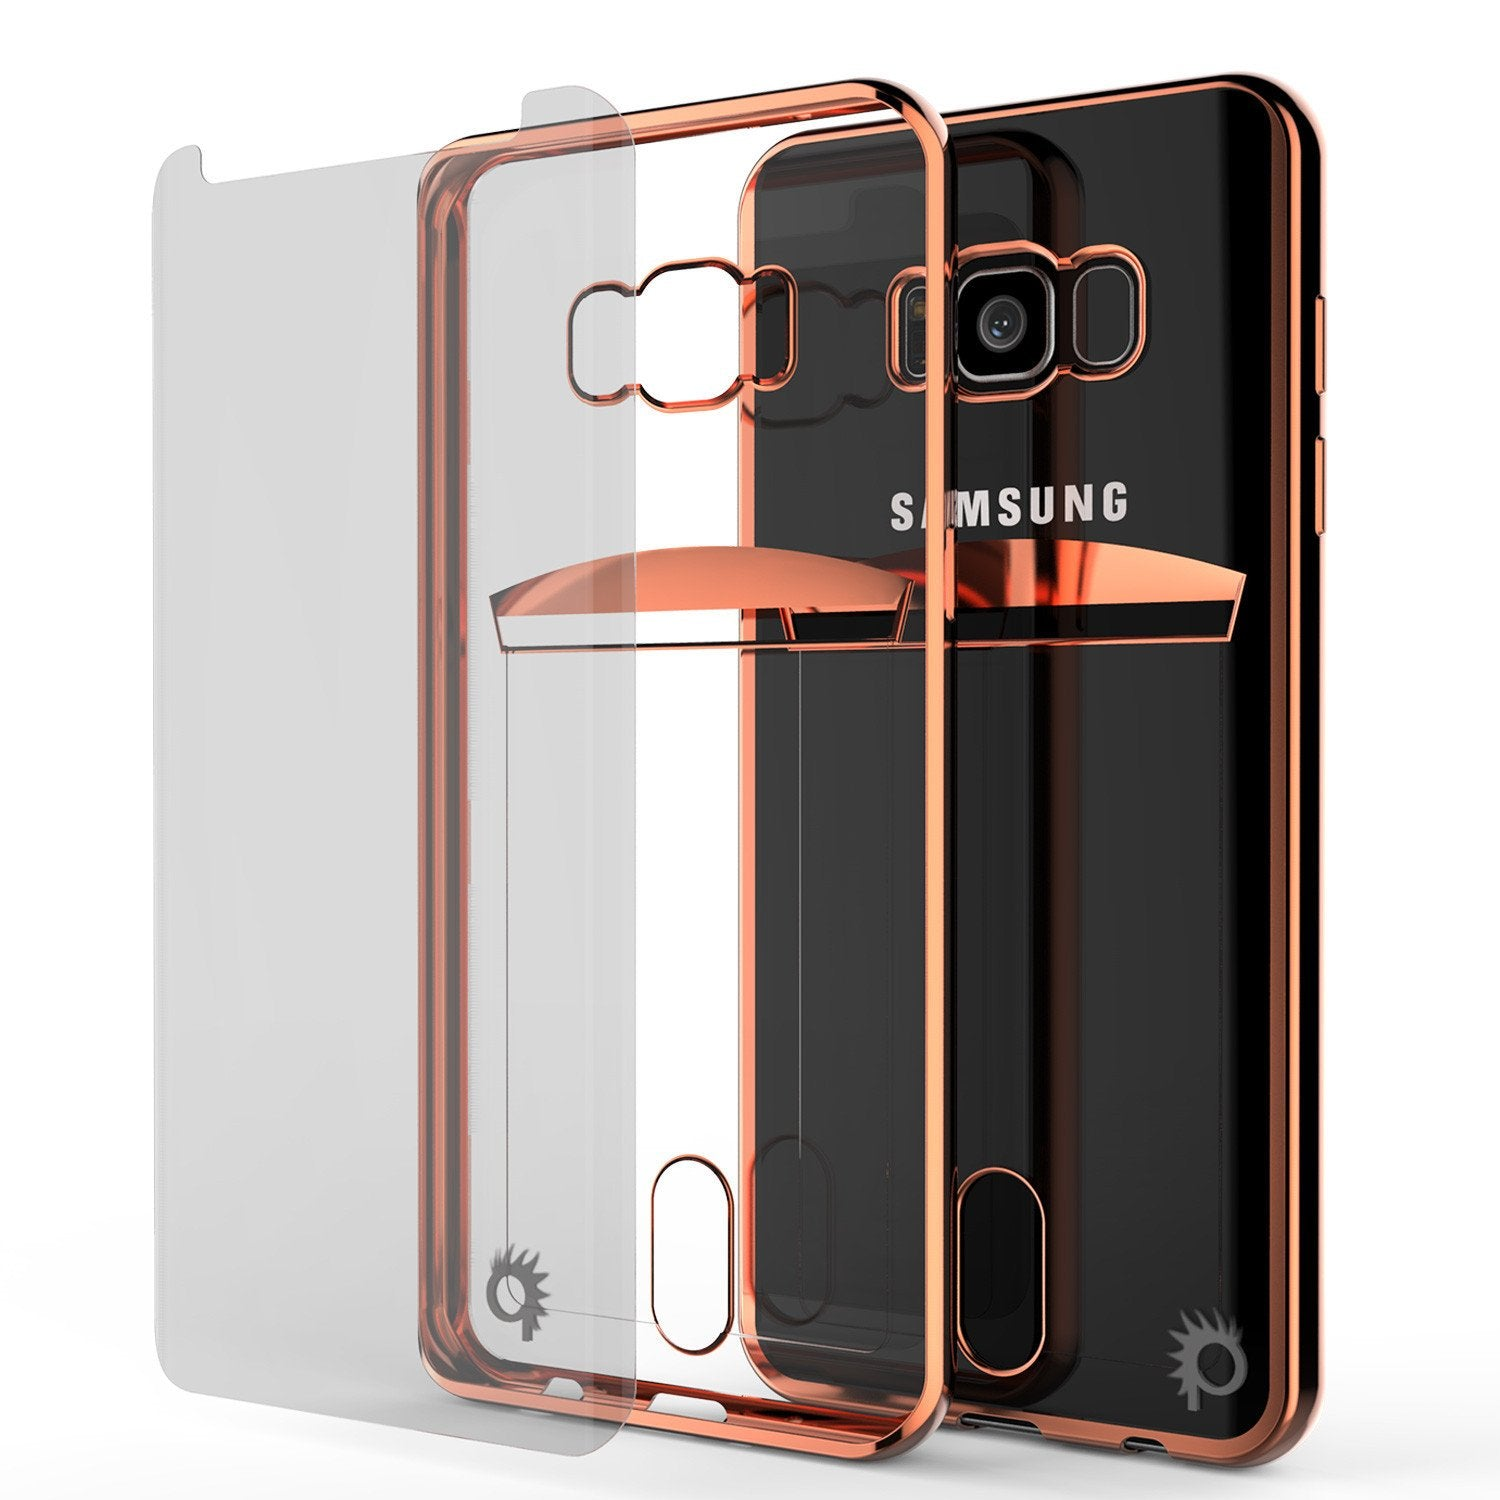 Galaxy S8 Plus Case, PUNKCASE® LUCID Rose Gold Series | Card Slot | SHIELD Screen Protector - PunkCase NZ